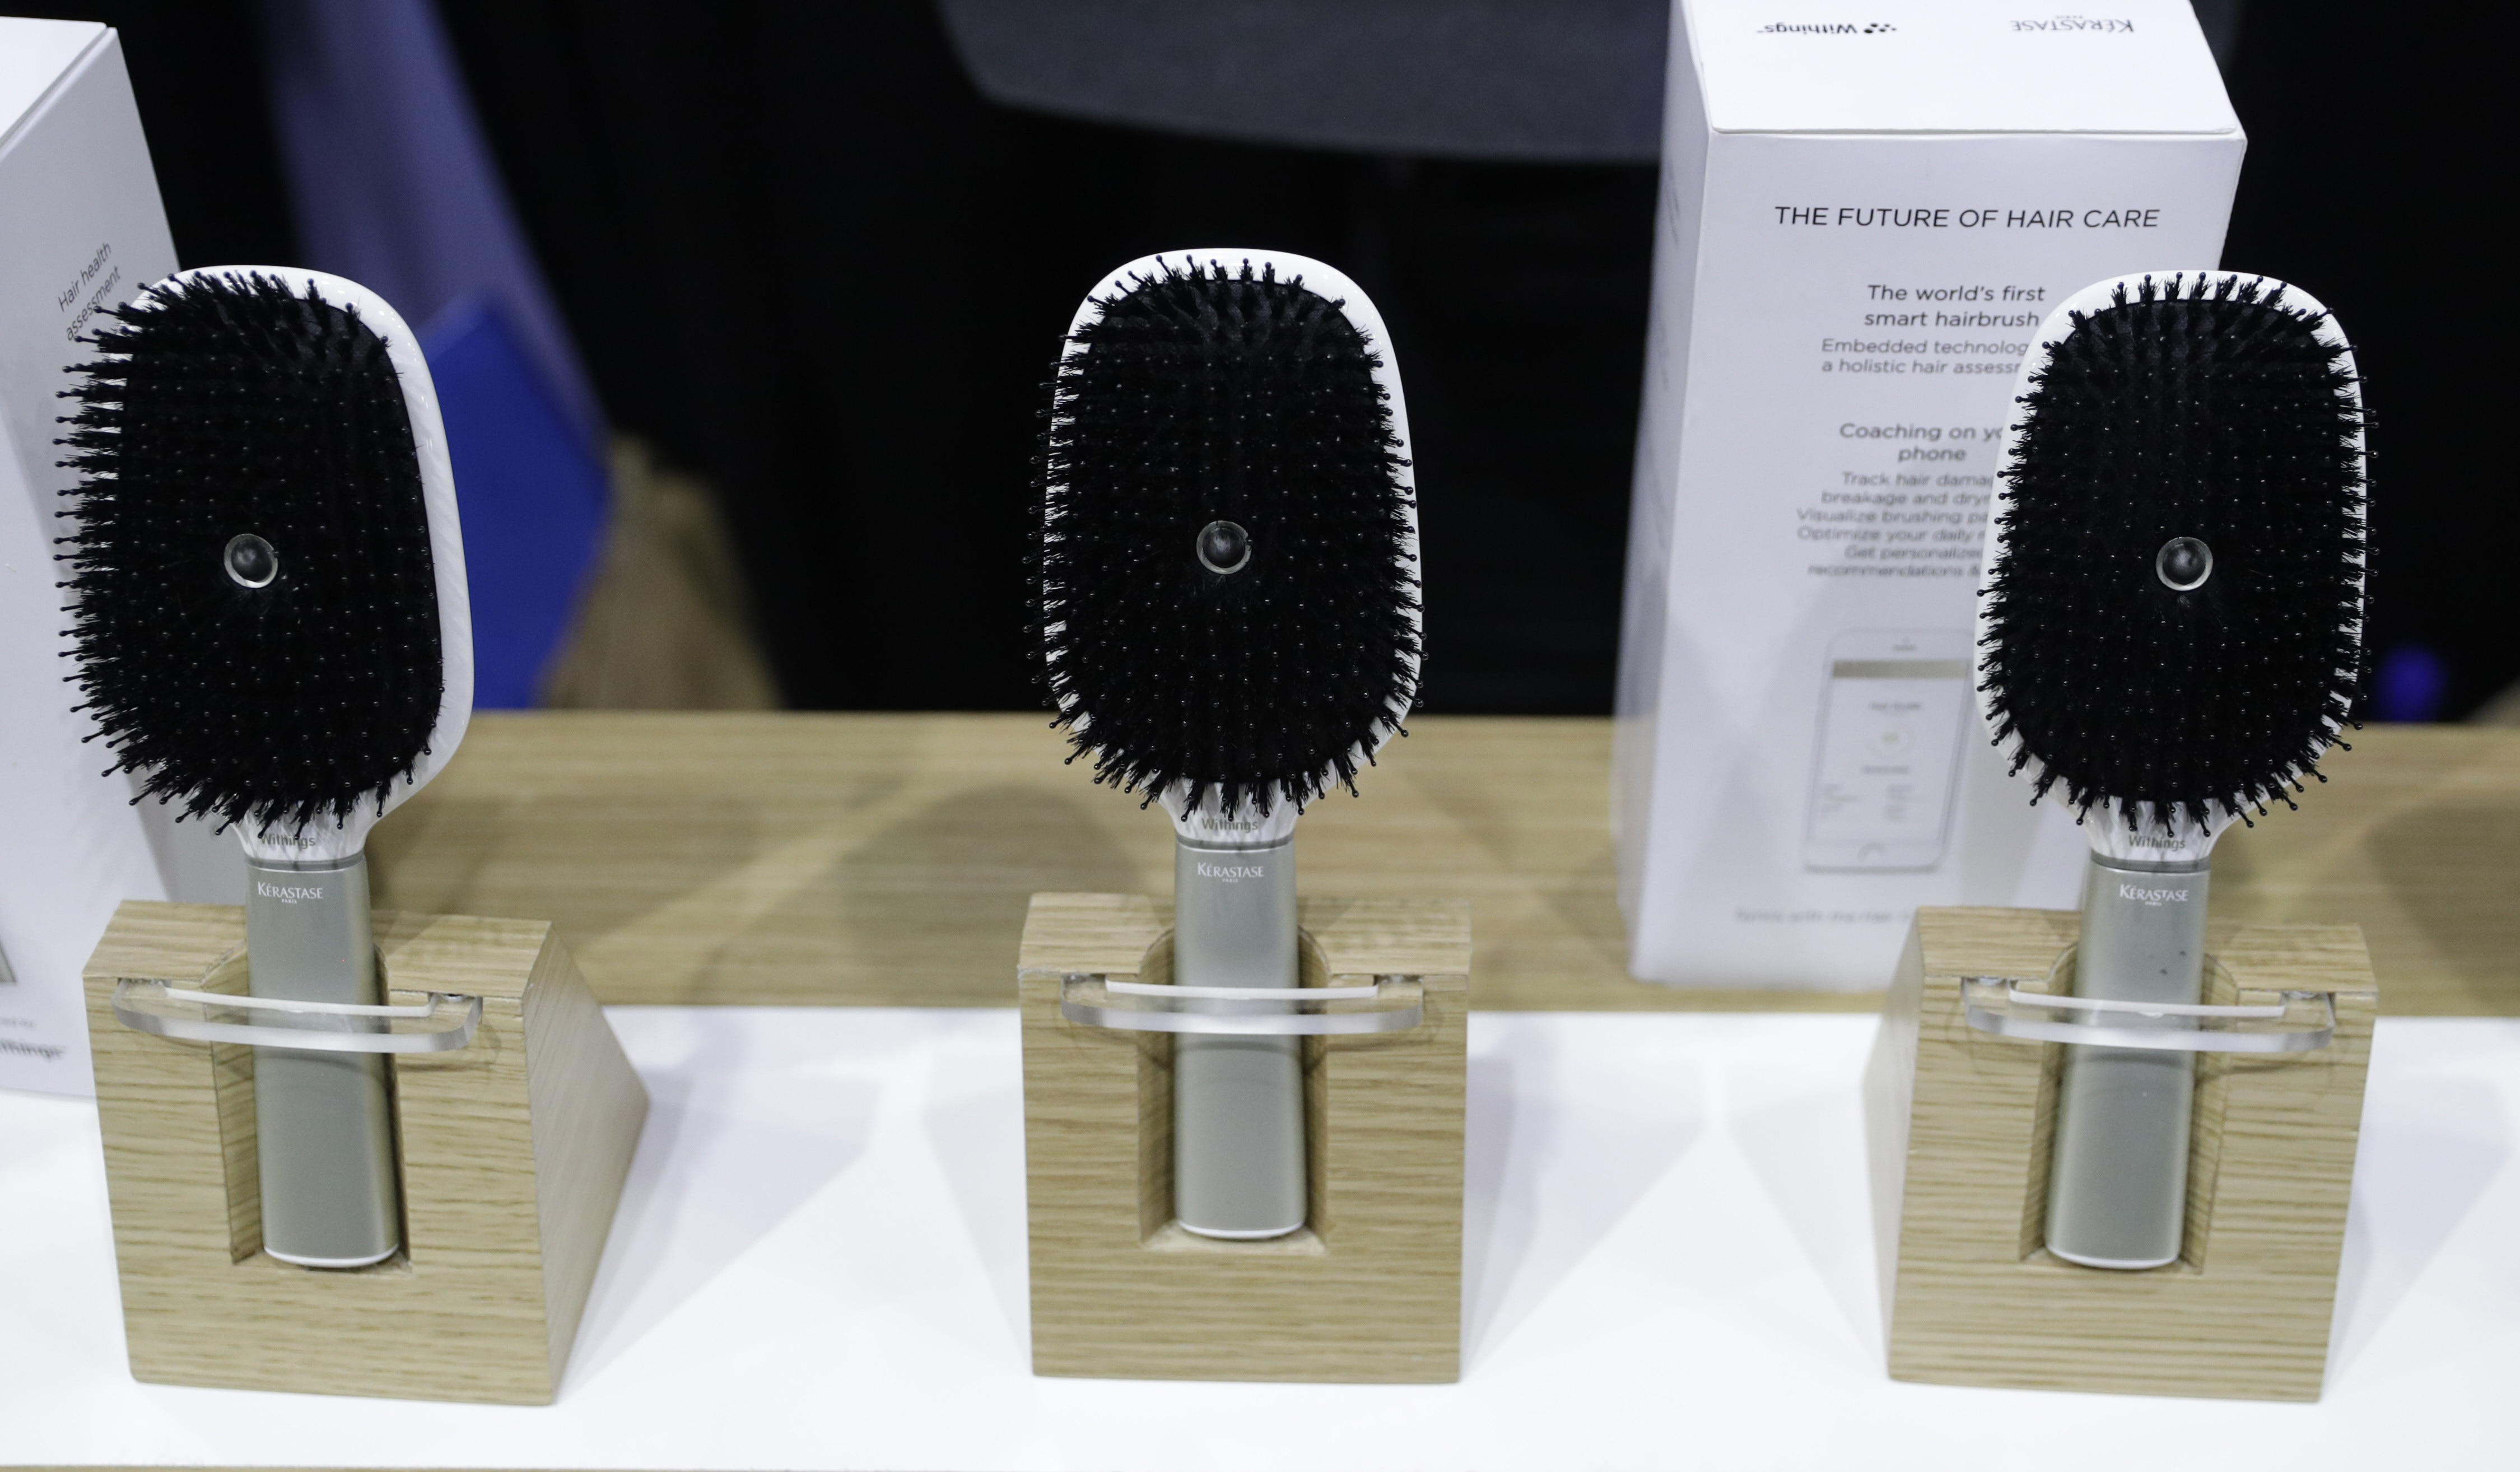 Three hairbrushes on display (© AP Images)